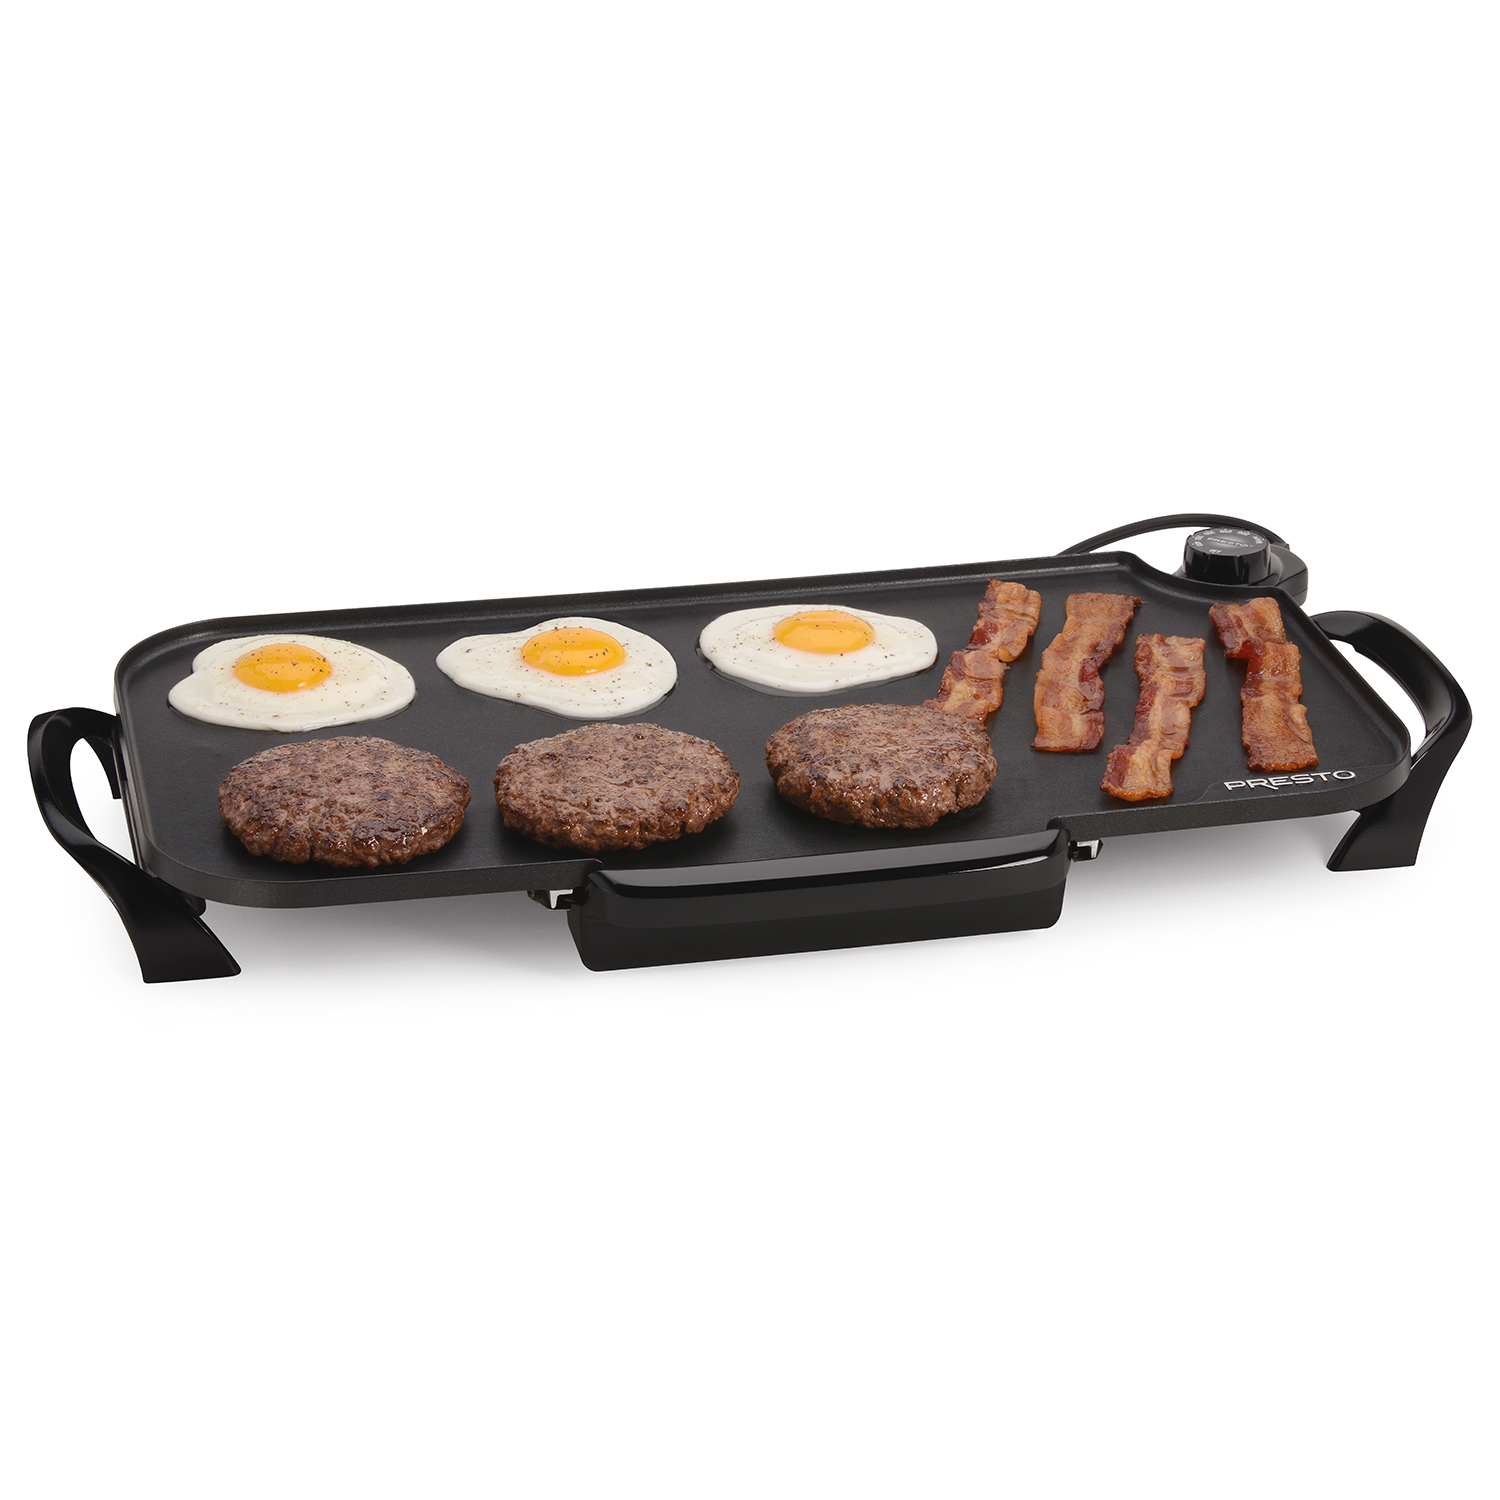 Presto 20-inch Electric Griddle 07053 by National Presto Industries